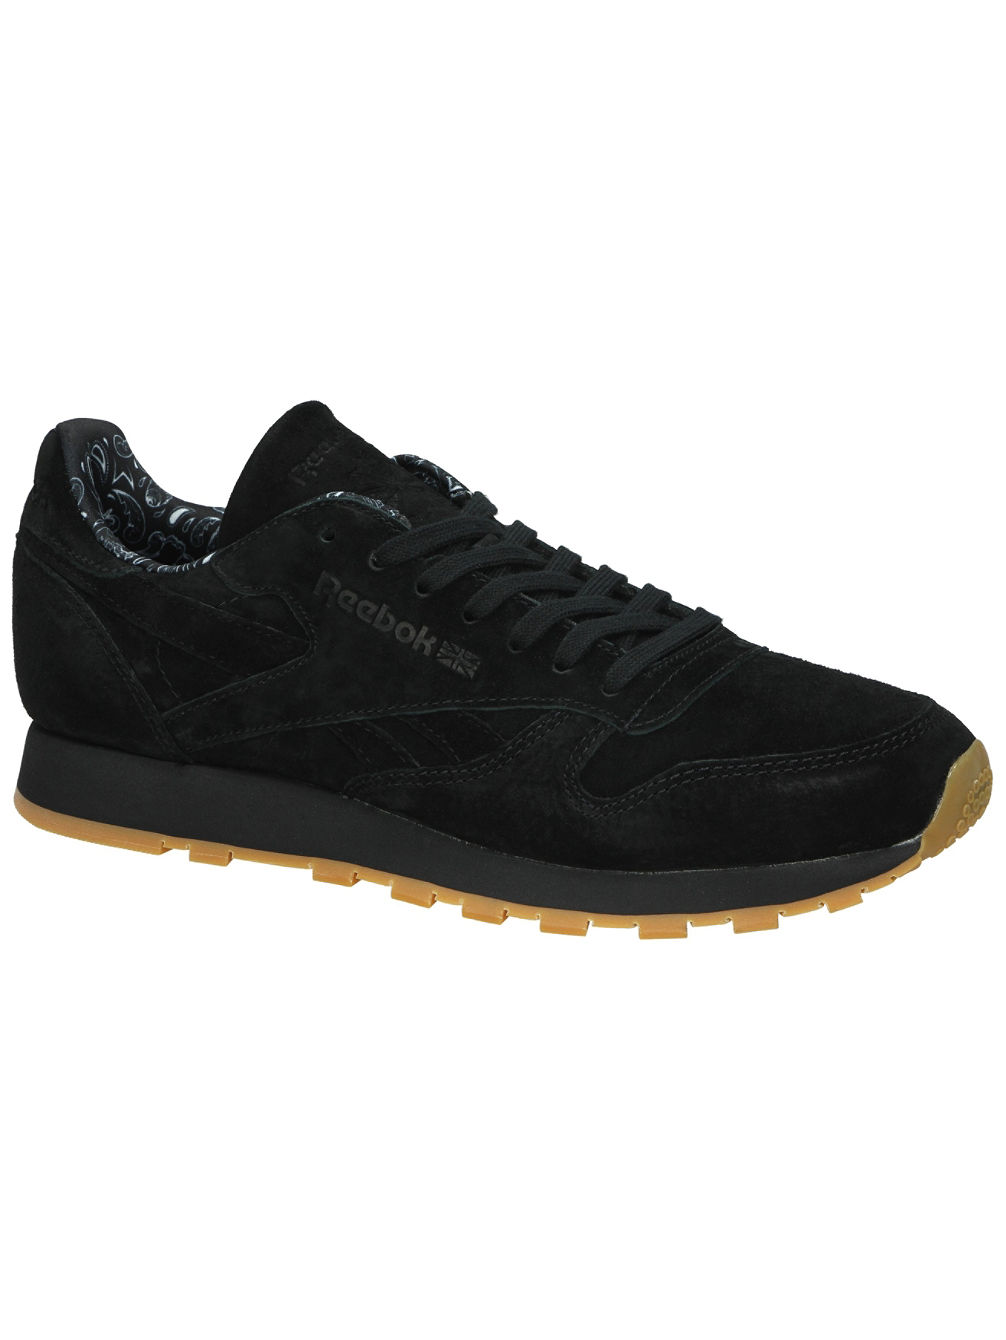 ed9ef7a816c Buy Reebok Classic Leather TDC Sneakers online at Blue Tomato